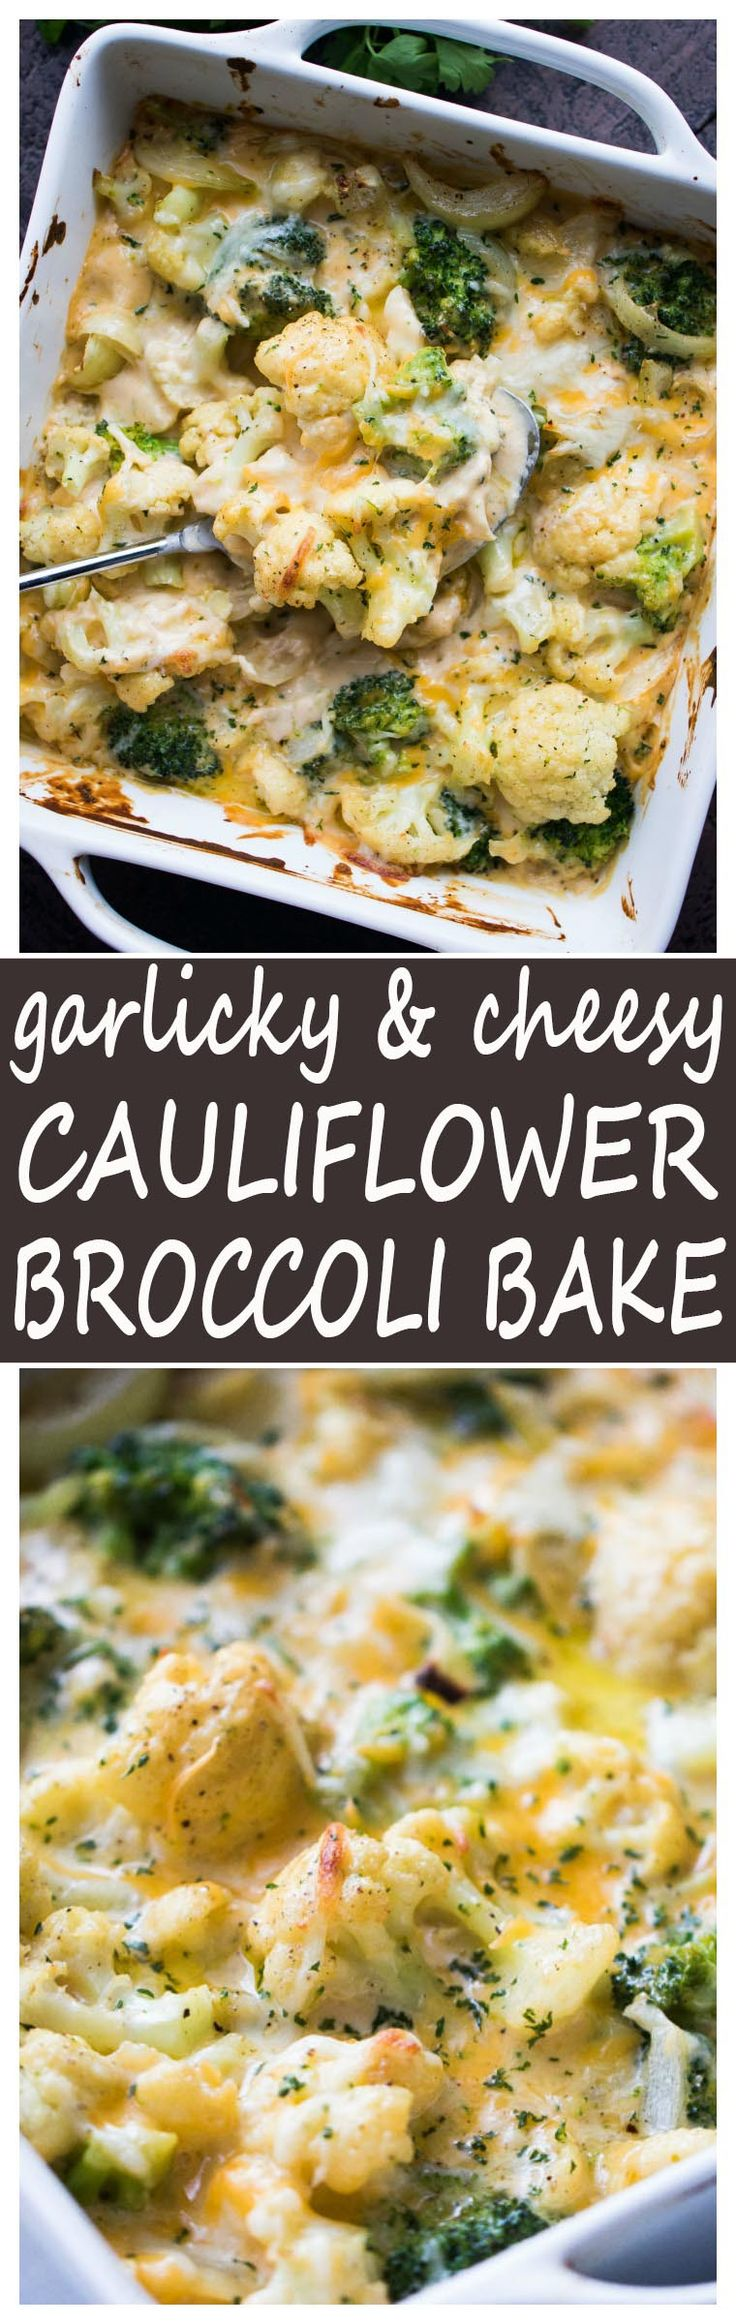 Garlicky and Cheesy Cauliflower Broccoli Bake - A lighter version of everyone's favorite rich and cheesy cauliflower broccoli bake!